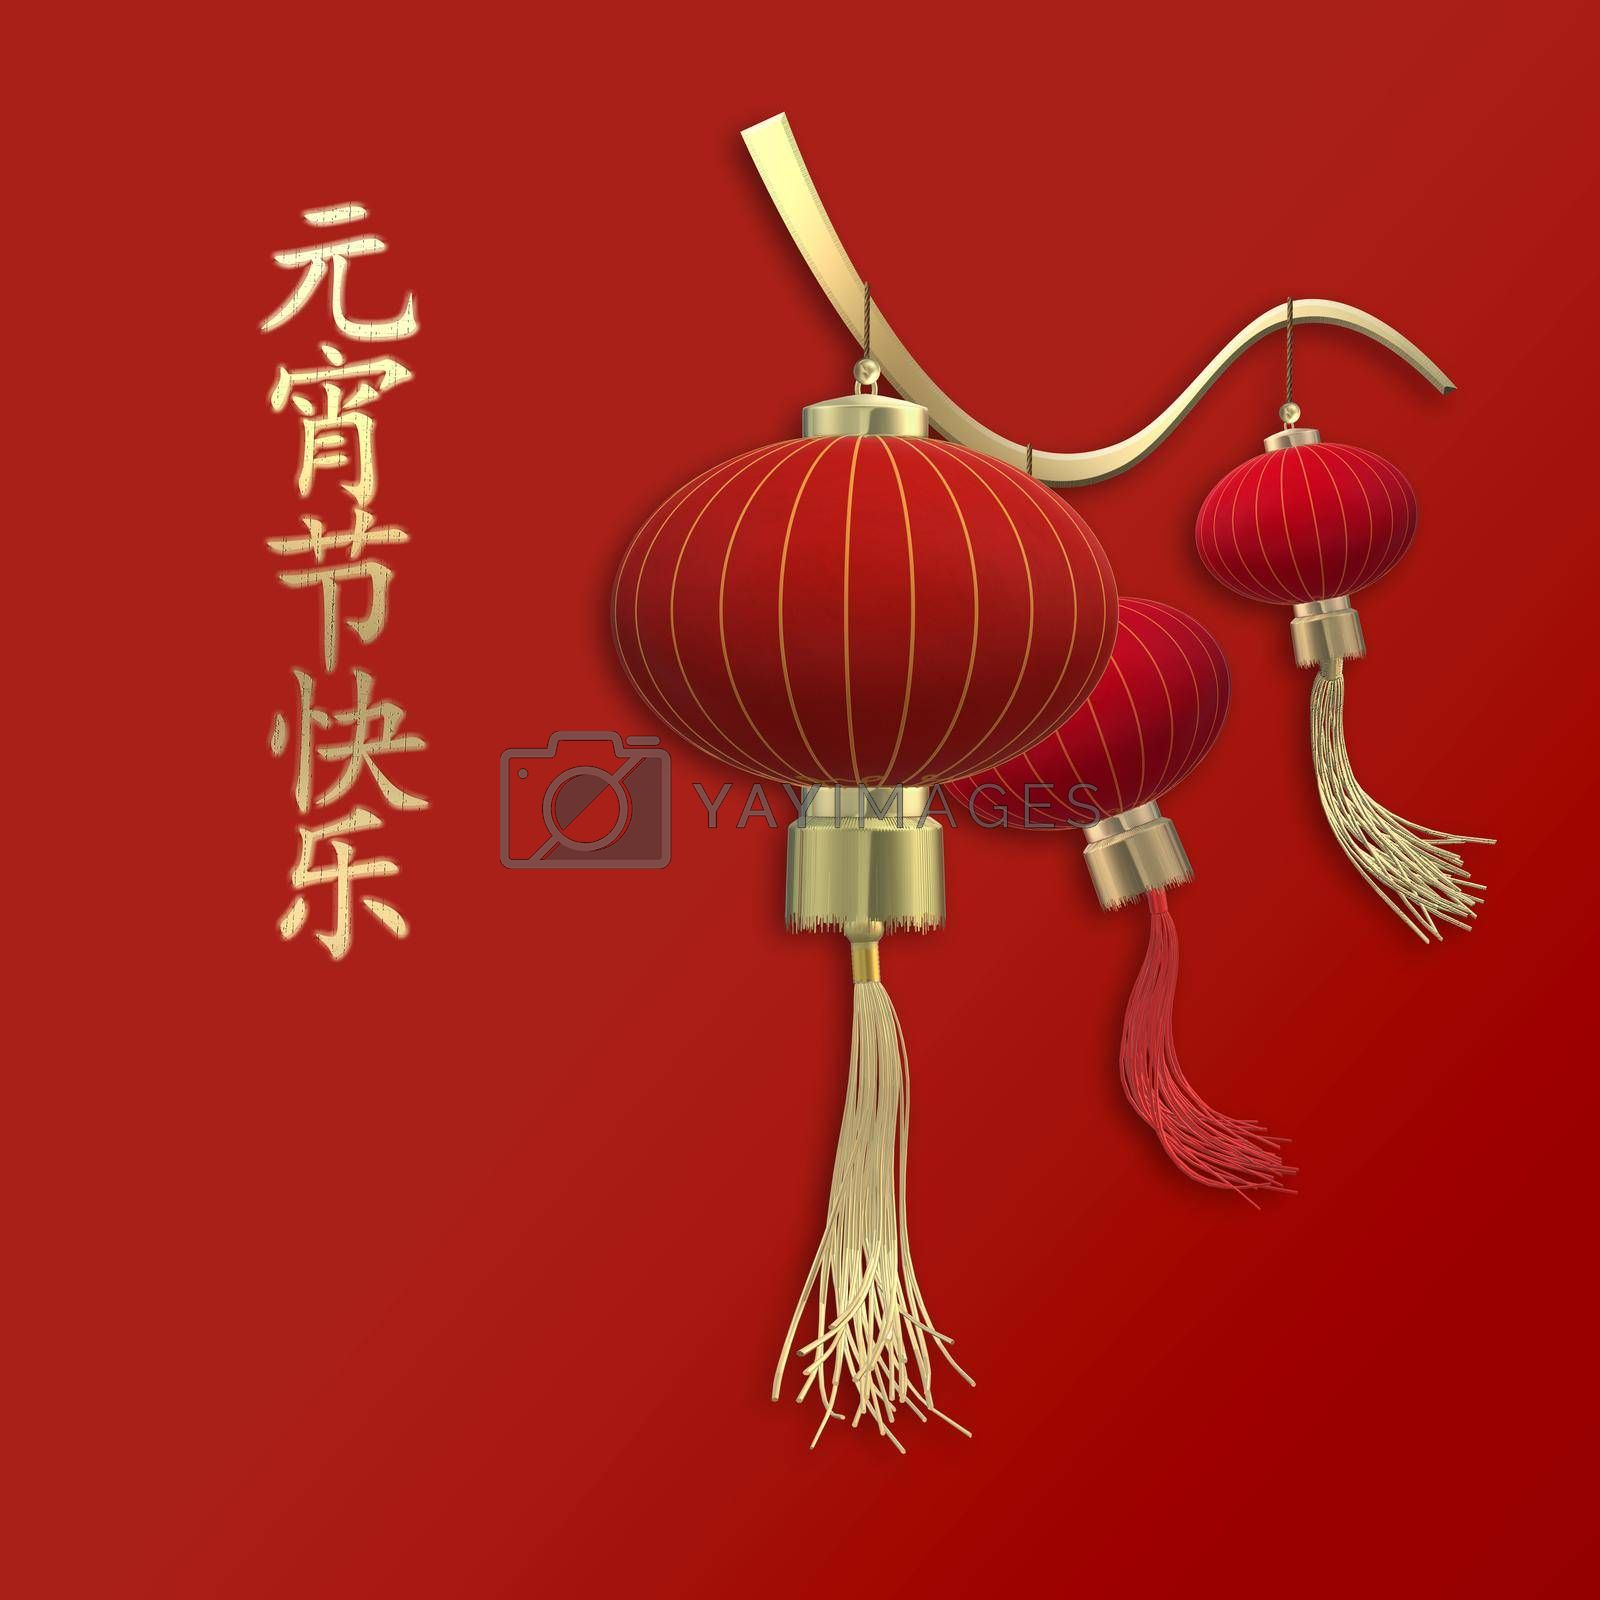 Lantern Festival, Chinese text Happy Lantern Festival. Red gold lanterns on red background. Holiday card, banner, poster concept. Place for text. 3d illustration